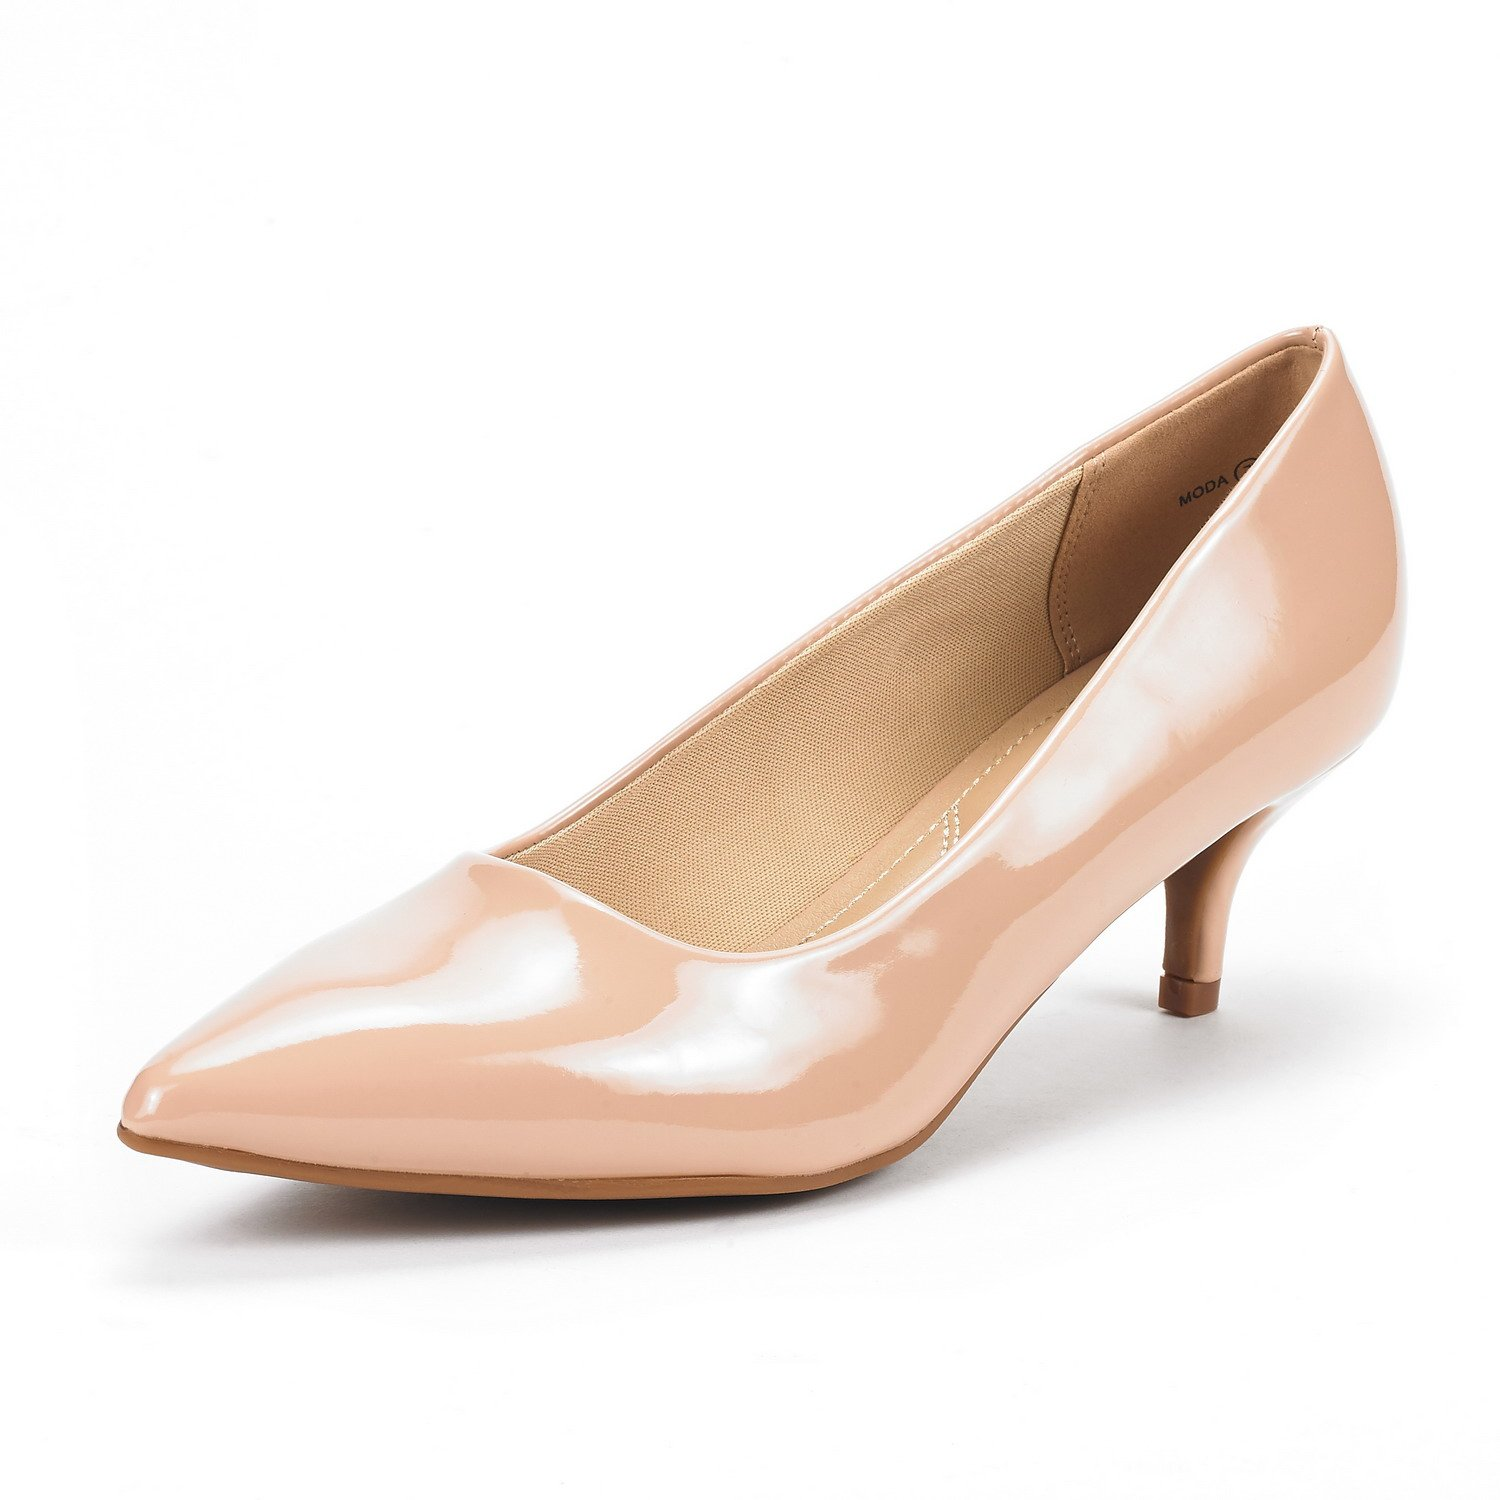 DREAM PAIRS Women's Moda Nude Pat Low Heel D'Orsay Pointed Toe Pump Shoes Size 11 M US